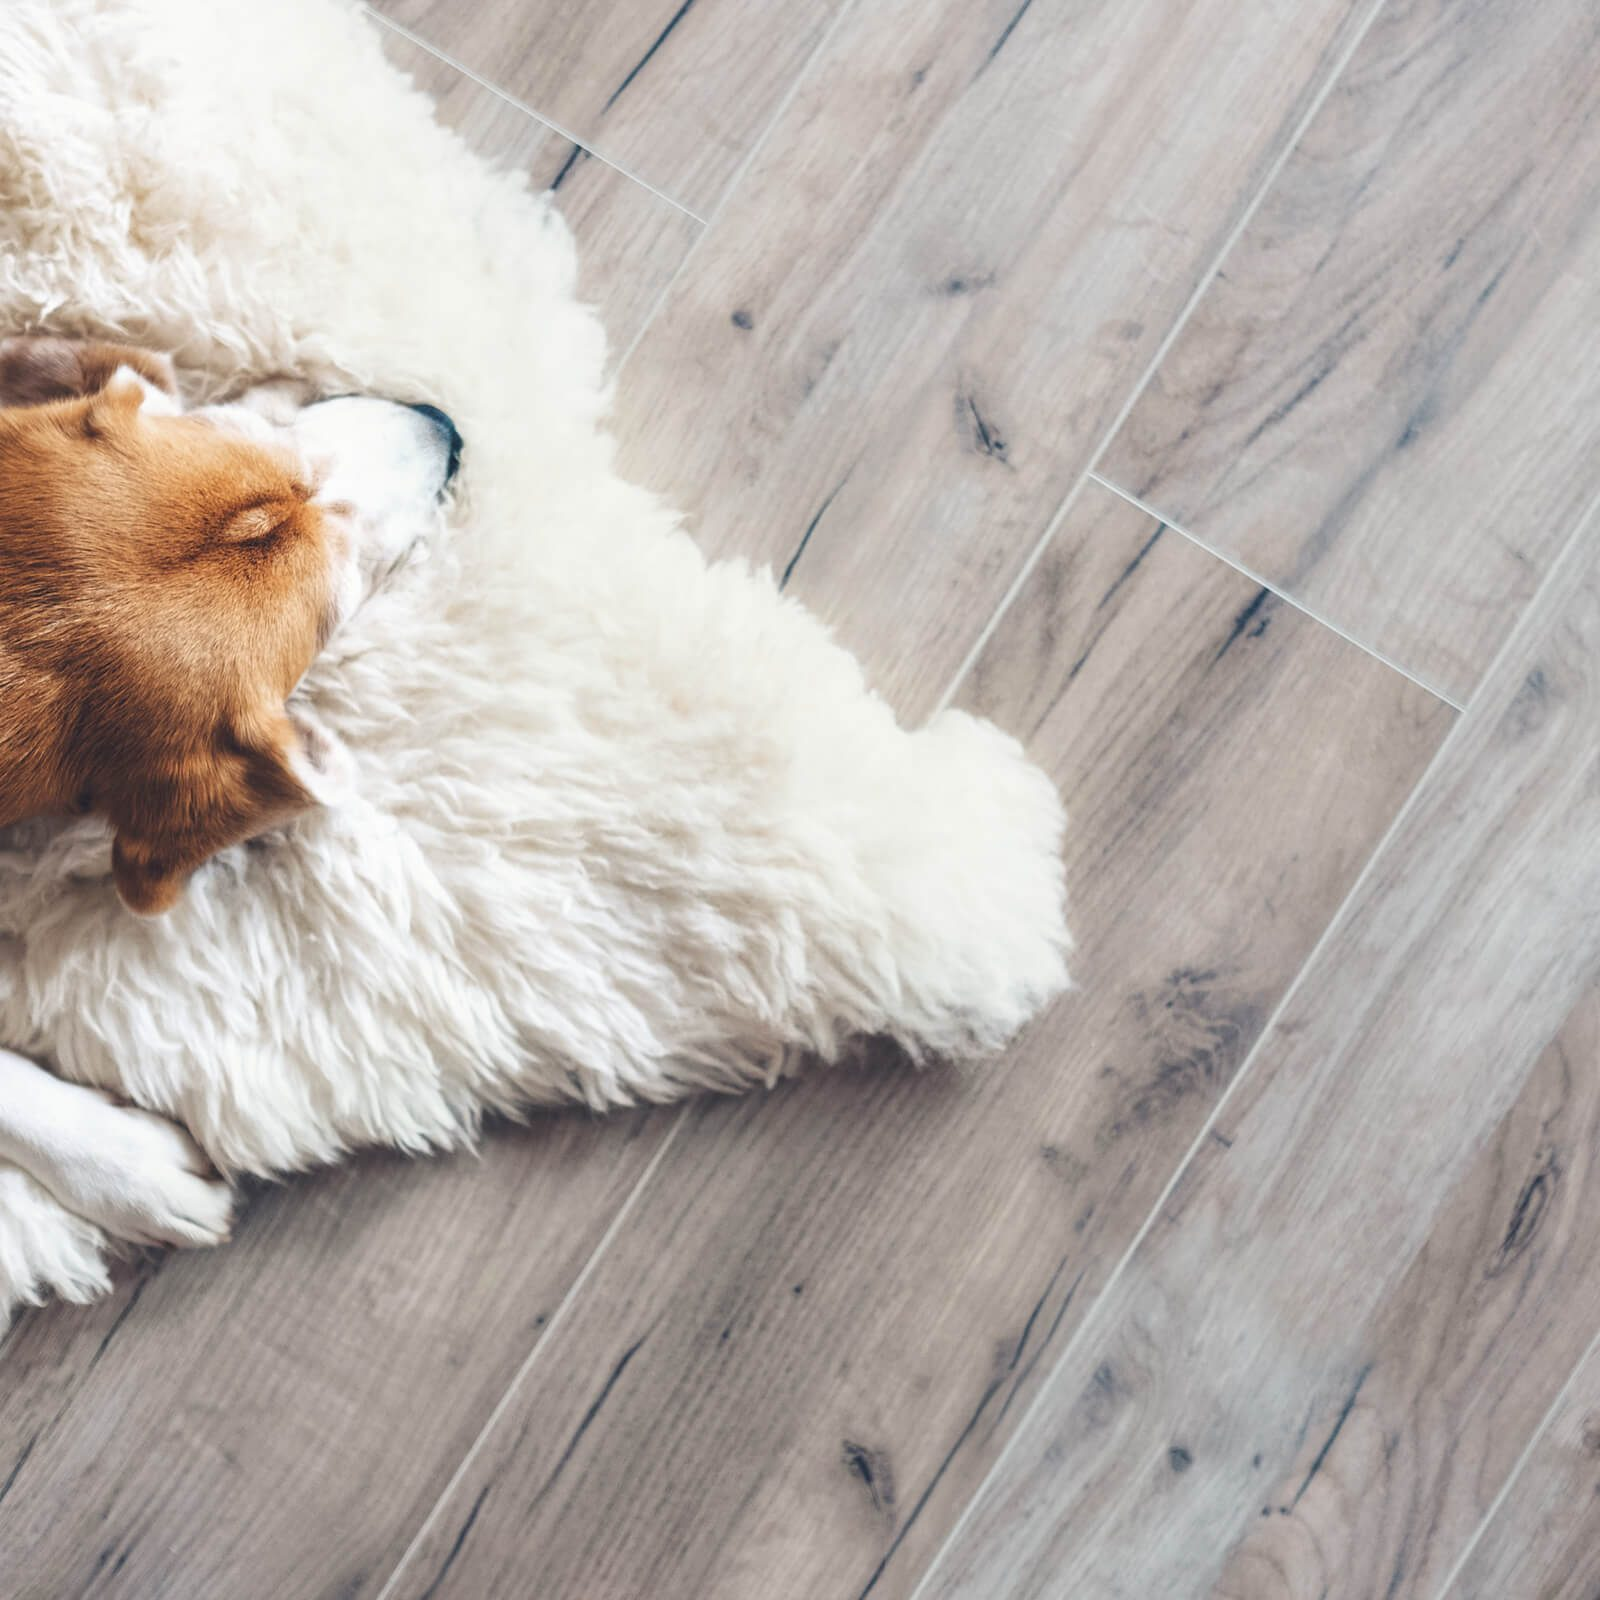 Pet friendly flooring | McCool's Flooring